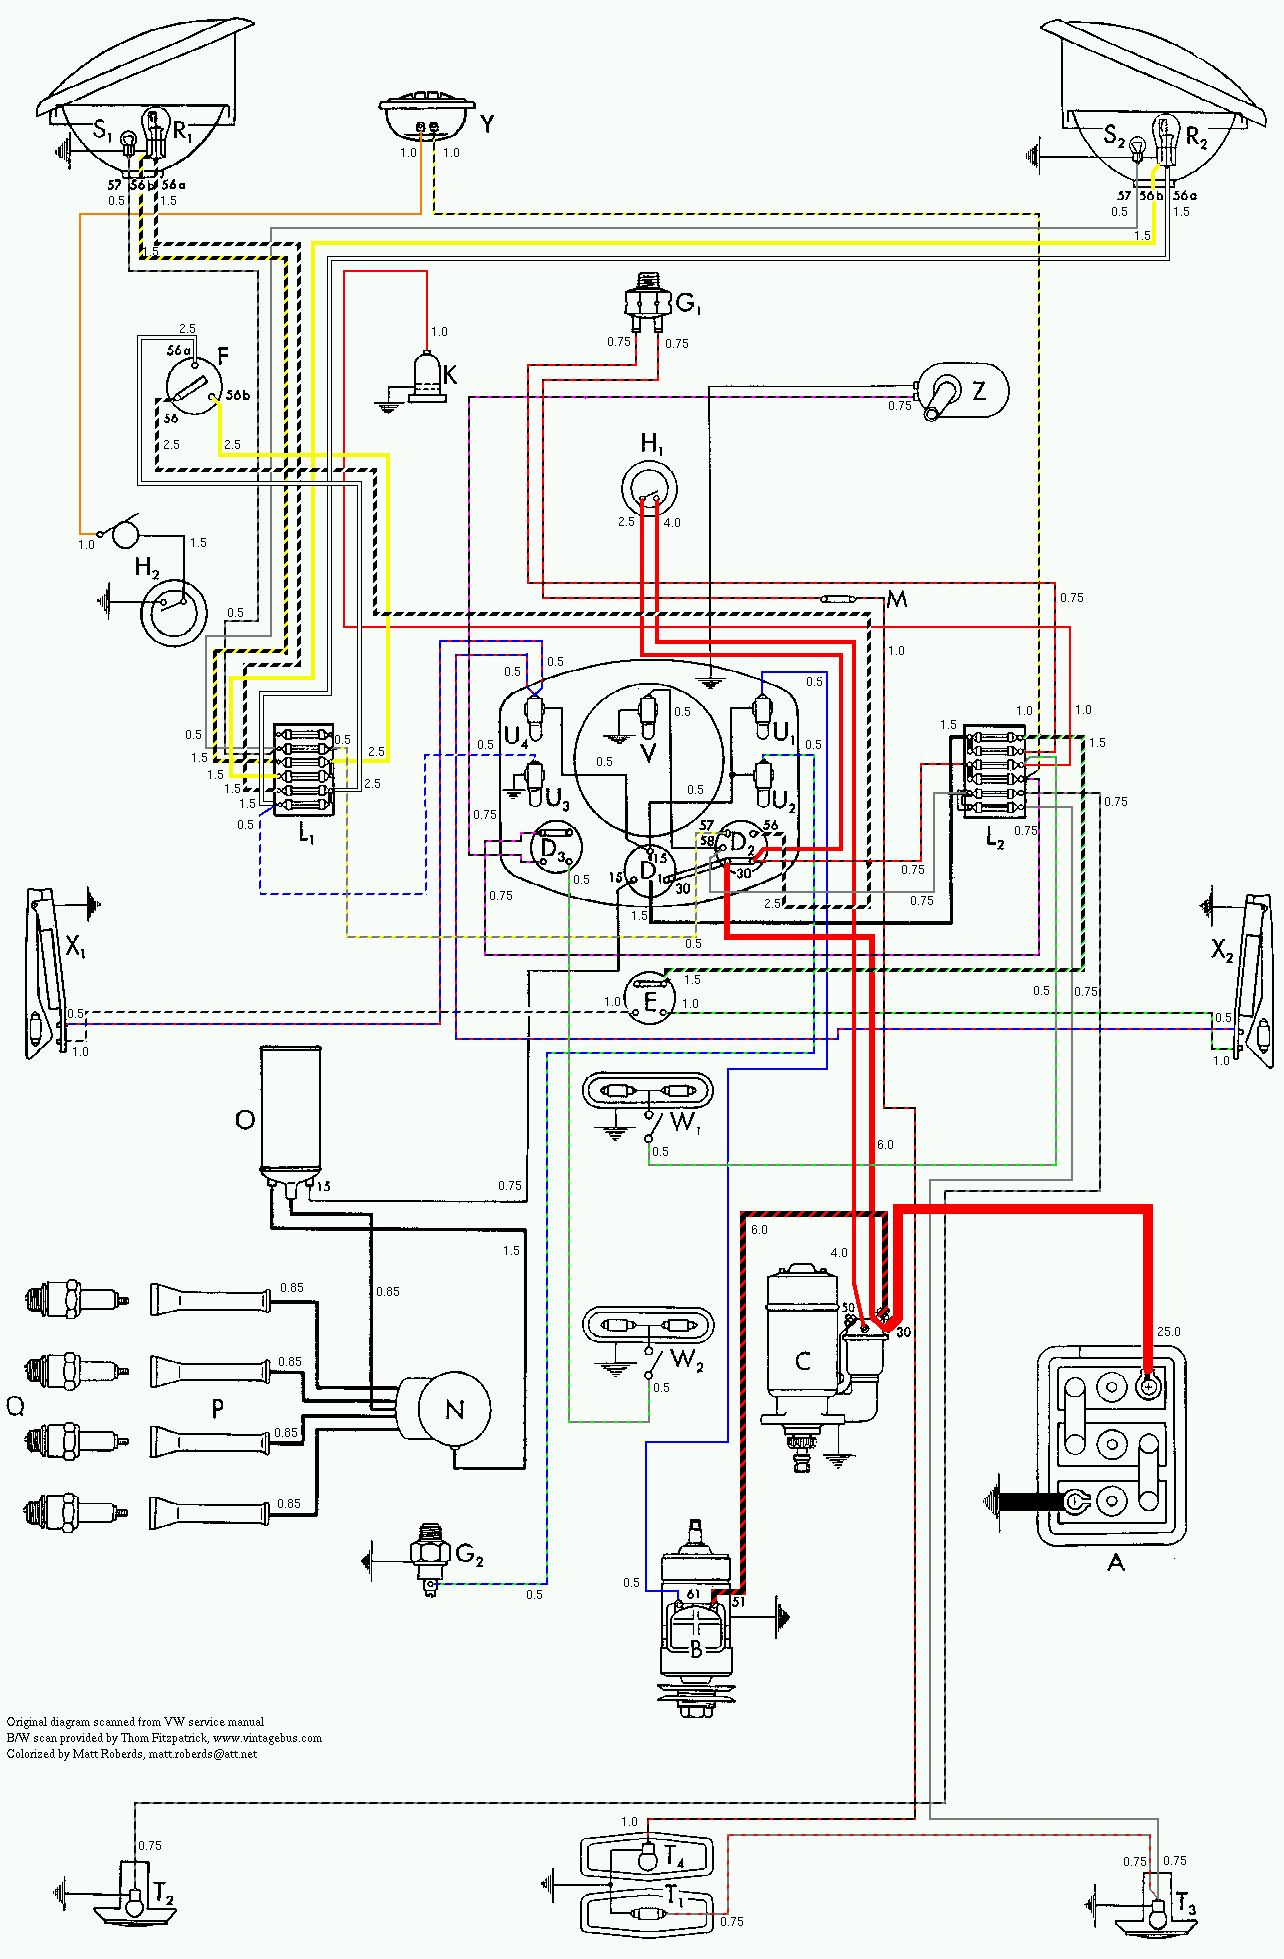 Wiring Diagram As Well Vw Bus Wiring Diagram On 74 Super Beetle And